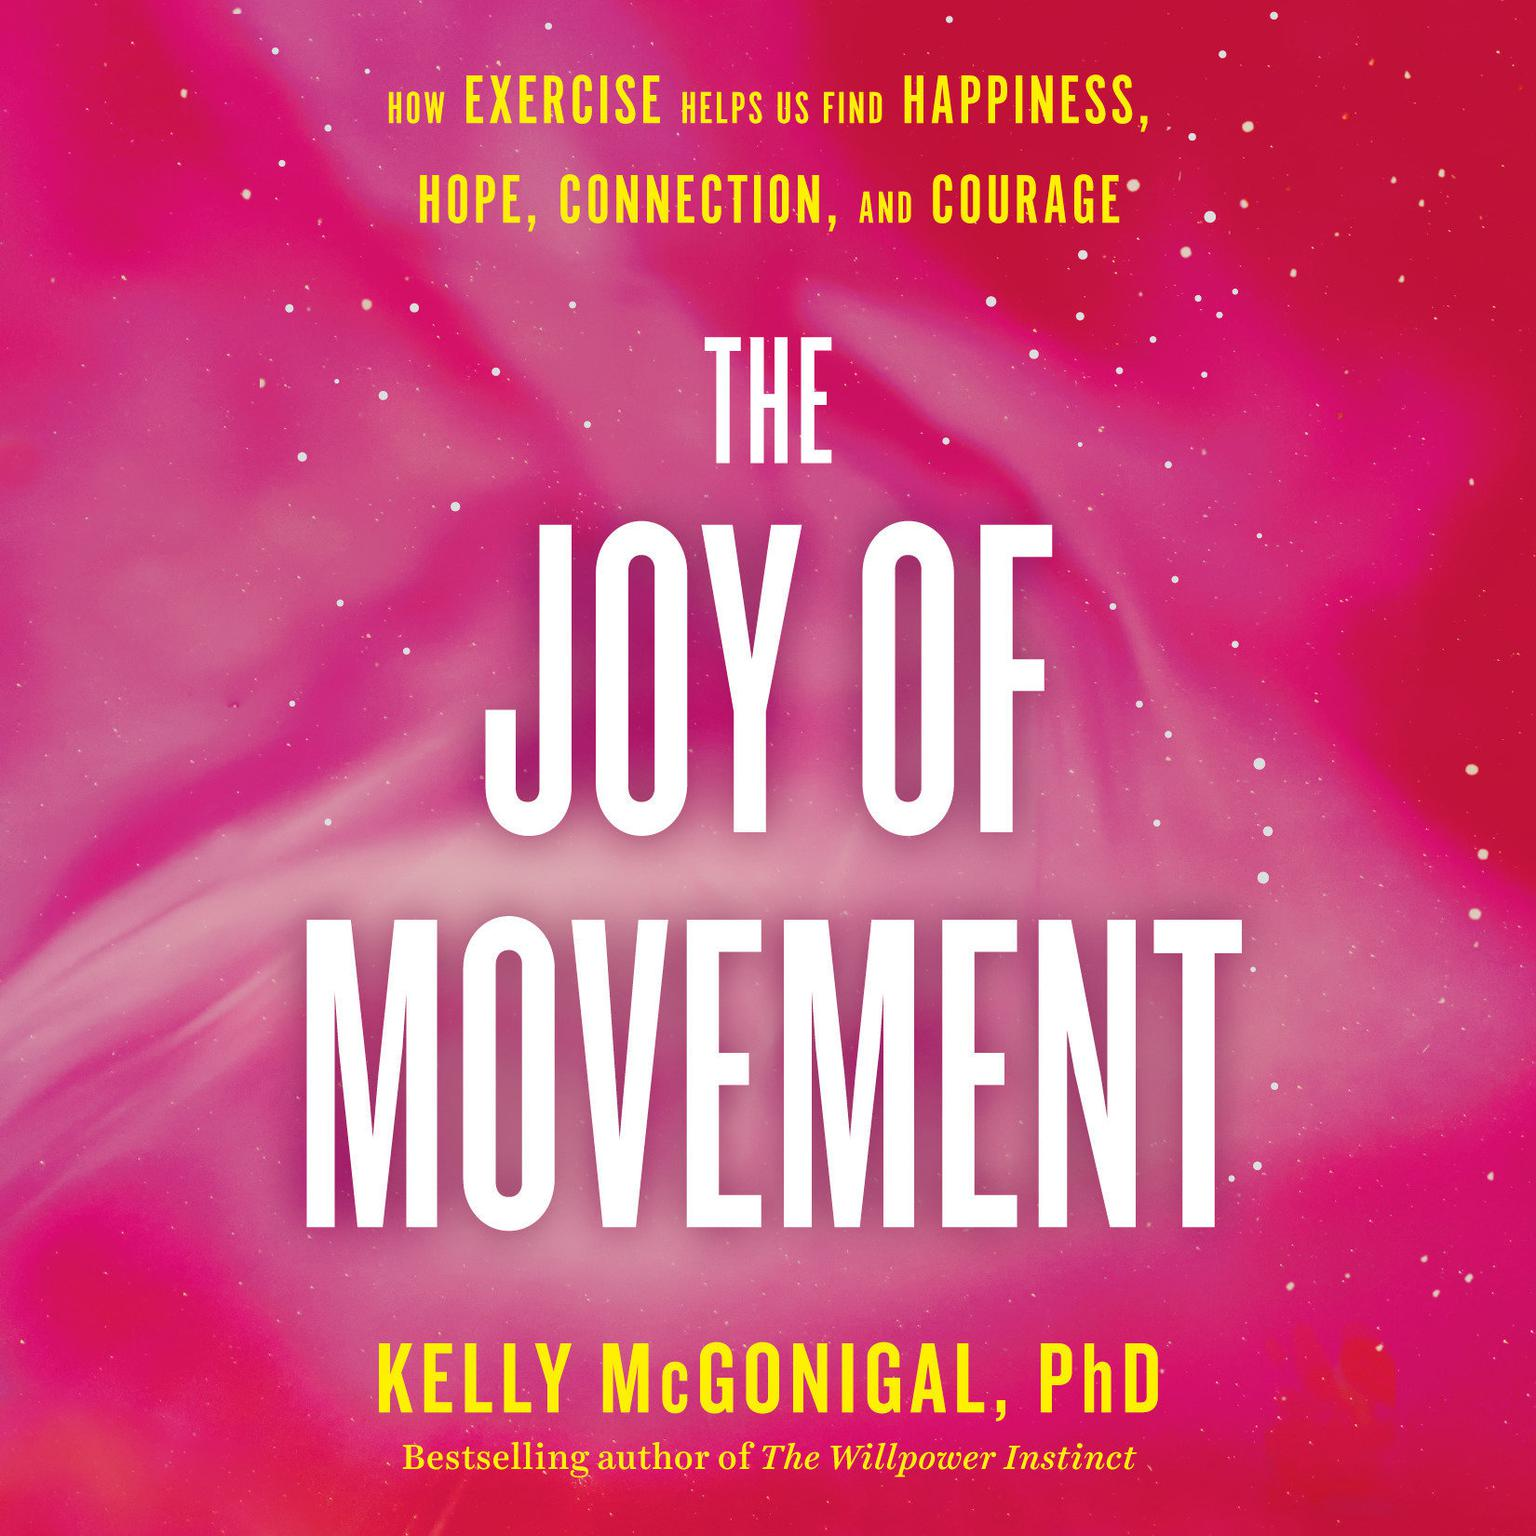 The Joy of Movement: How exercise helps us find happiness, hope, connection, and courage Audiobook, by Kelly McGonigal